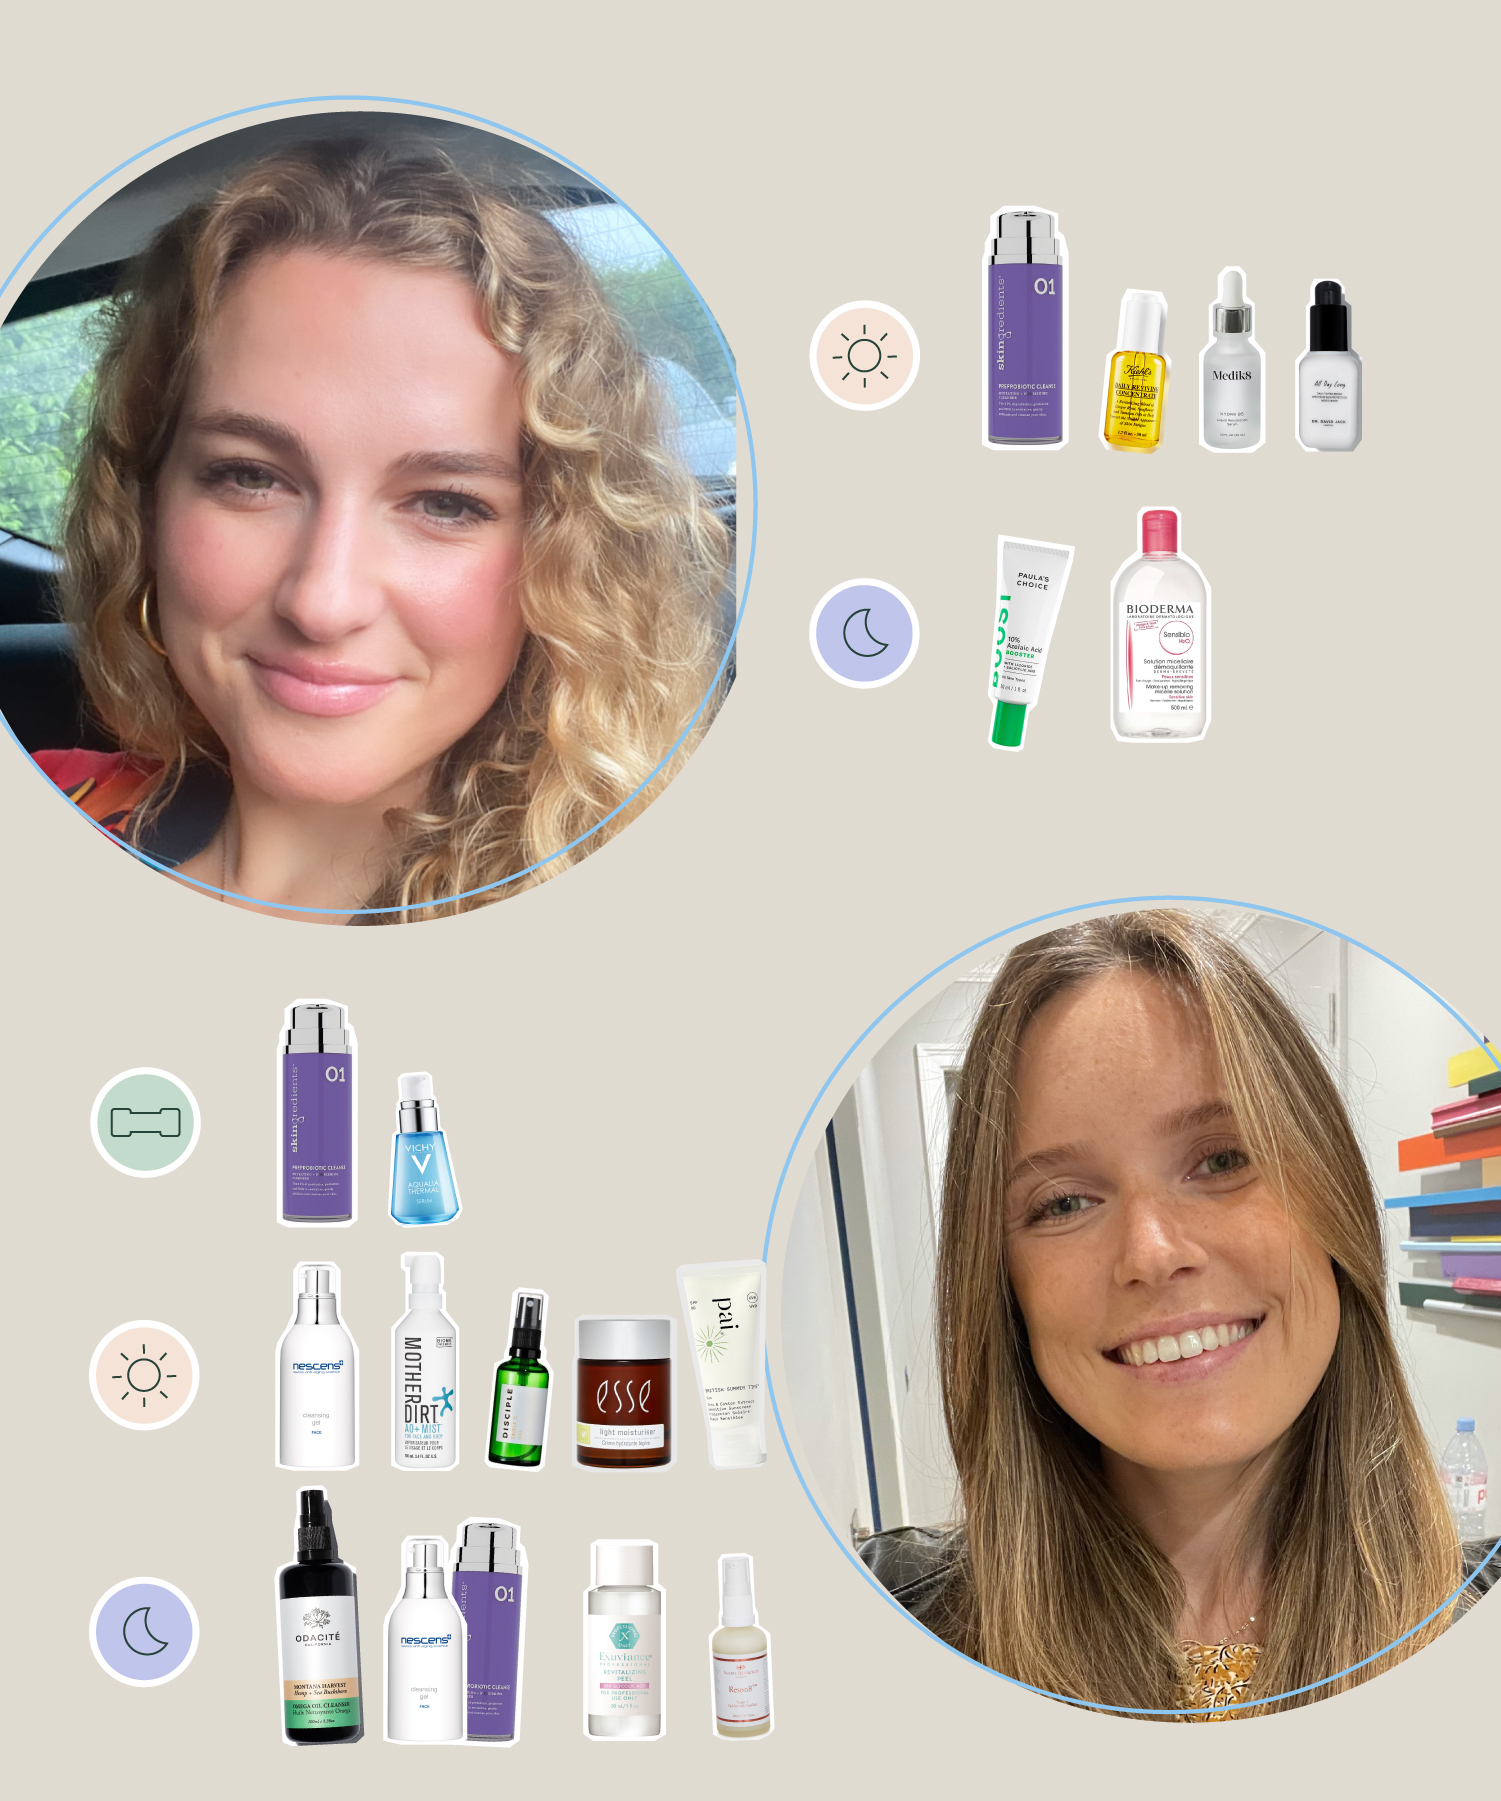 Megan and Ksenia share their current skincare routine